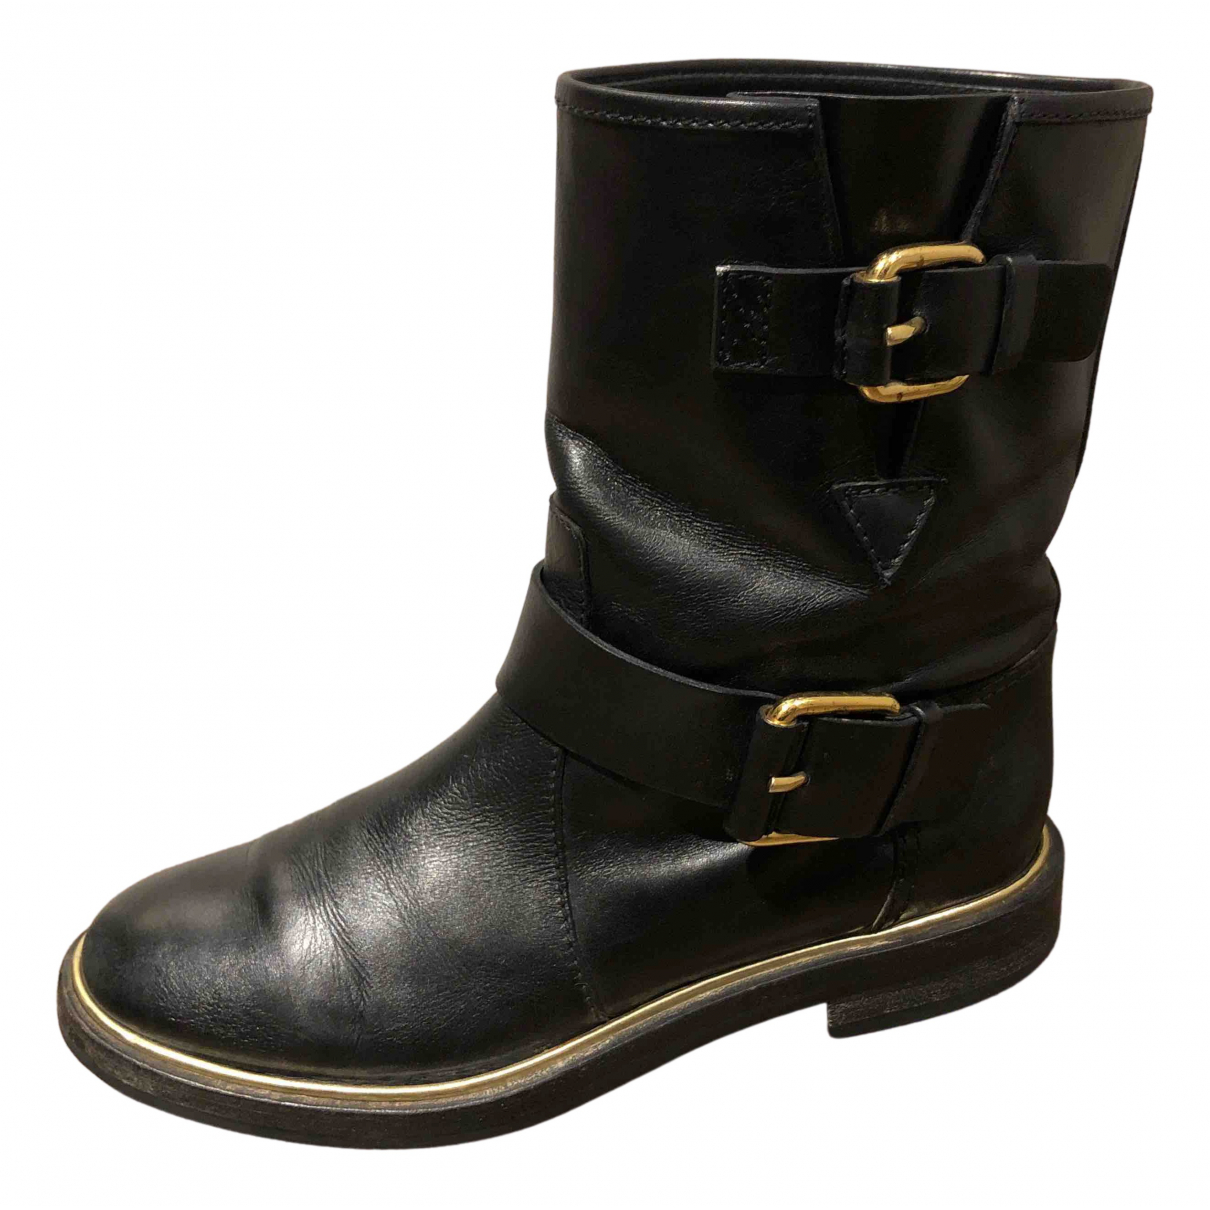 Casadei N Black Leather Boots for Women 6 US